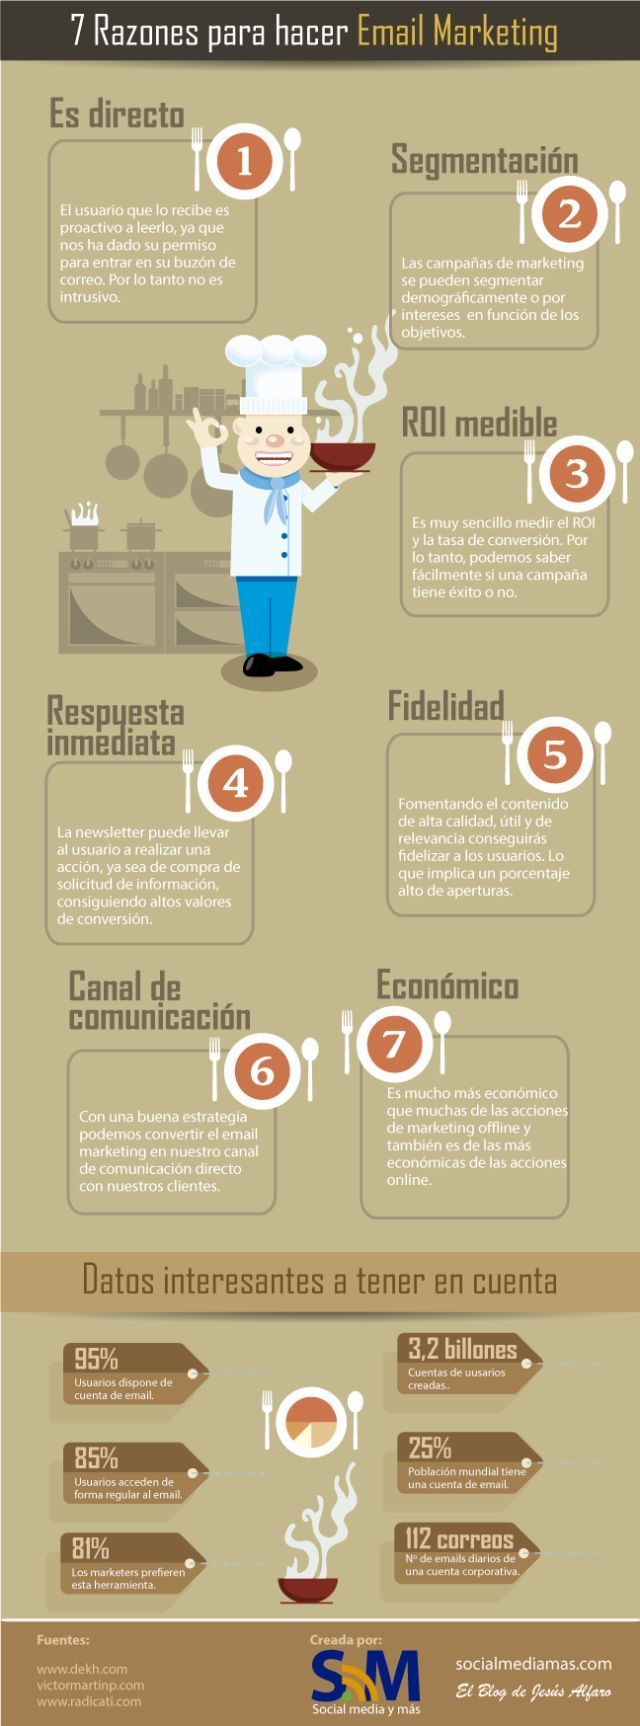 7 razones de email marketing